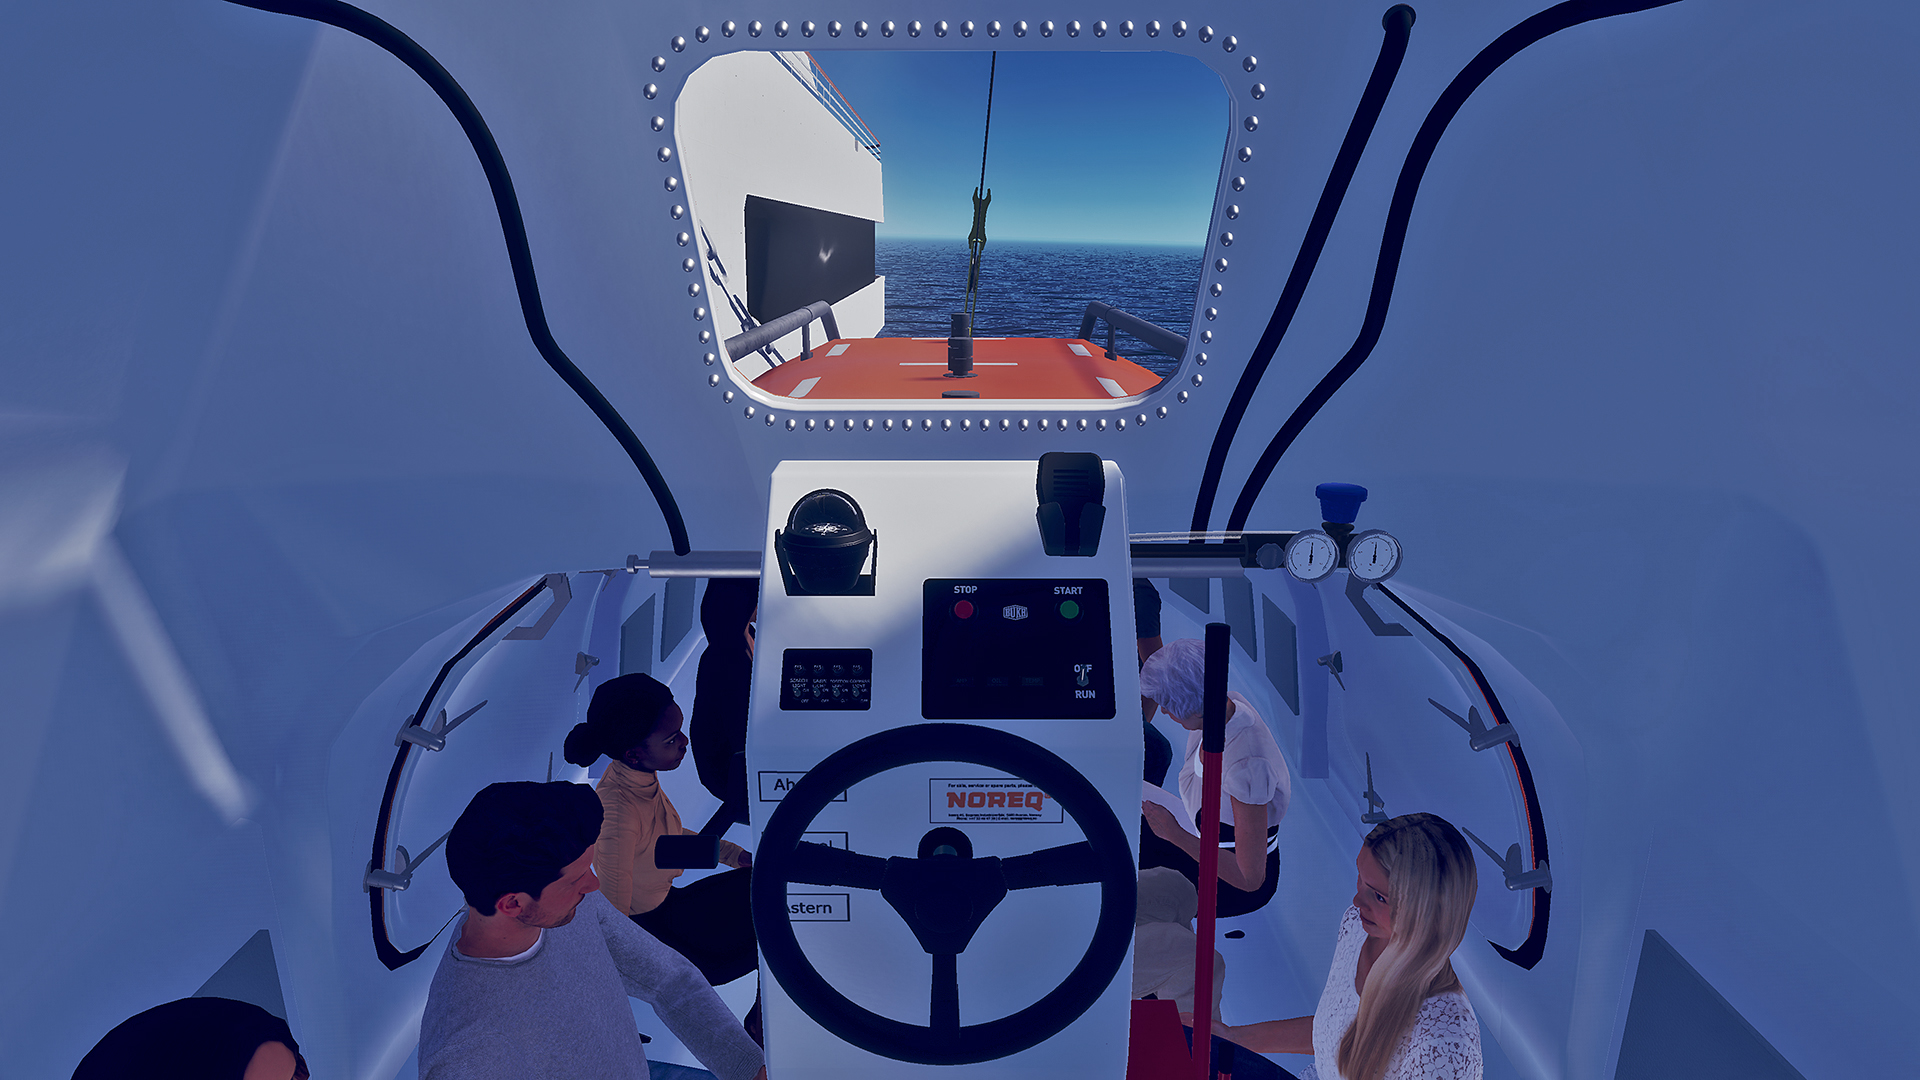 Soon to be launched - VR lifeboat simulator